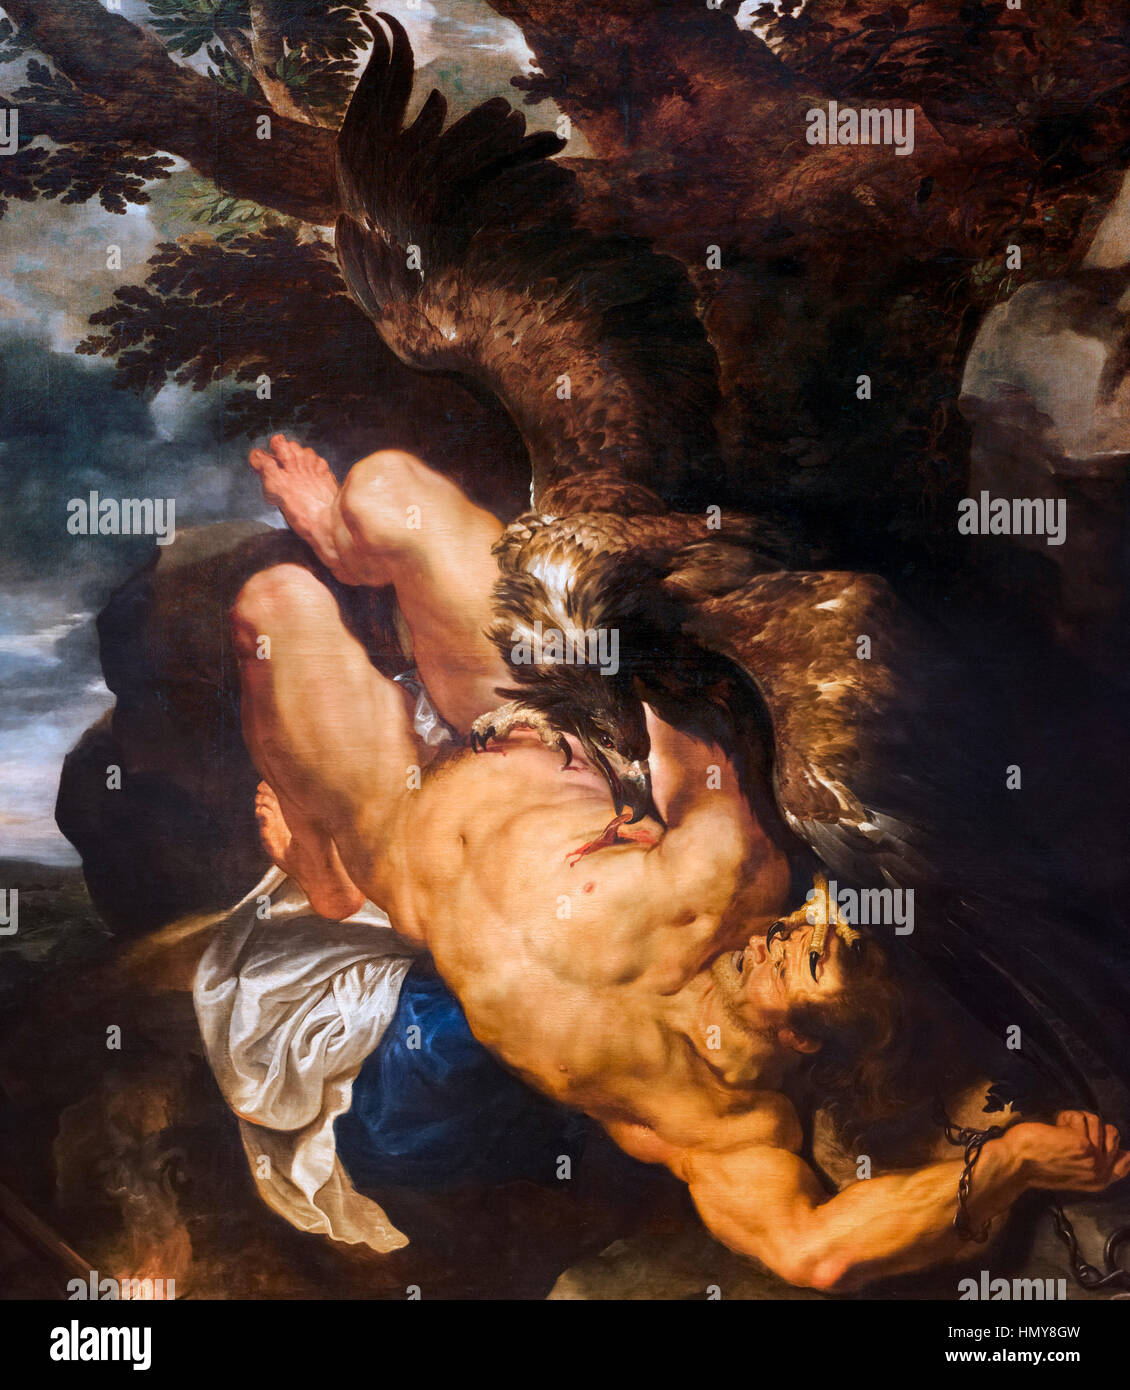 Rubens painting. 'Prometheus Bound' by Peter Paul Rubens, oil on canvas, c.1611-18. Bird painted by Frans - Stock Image